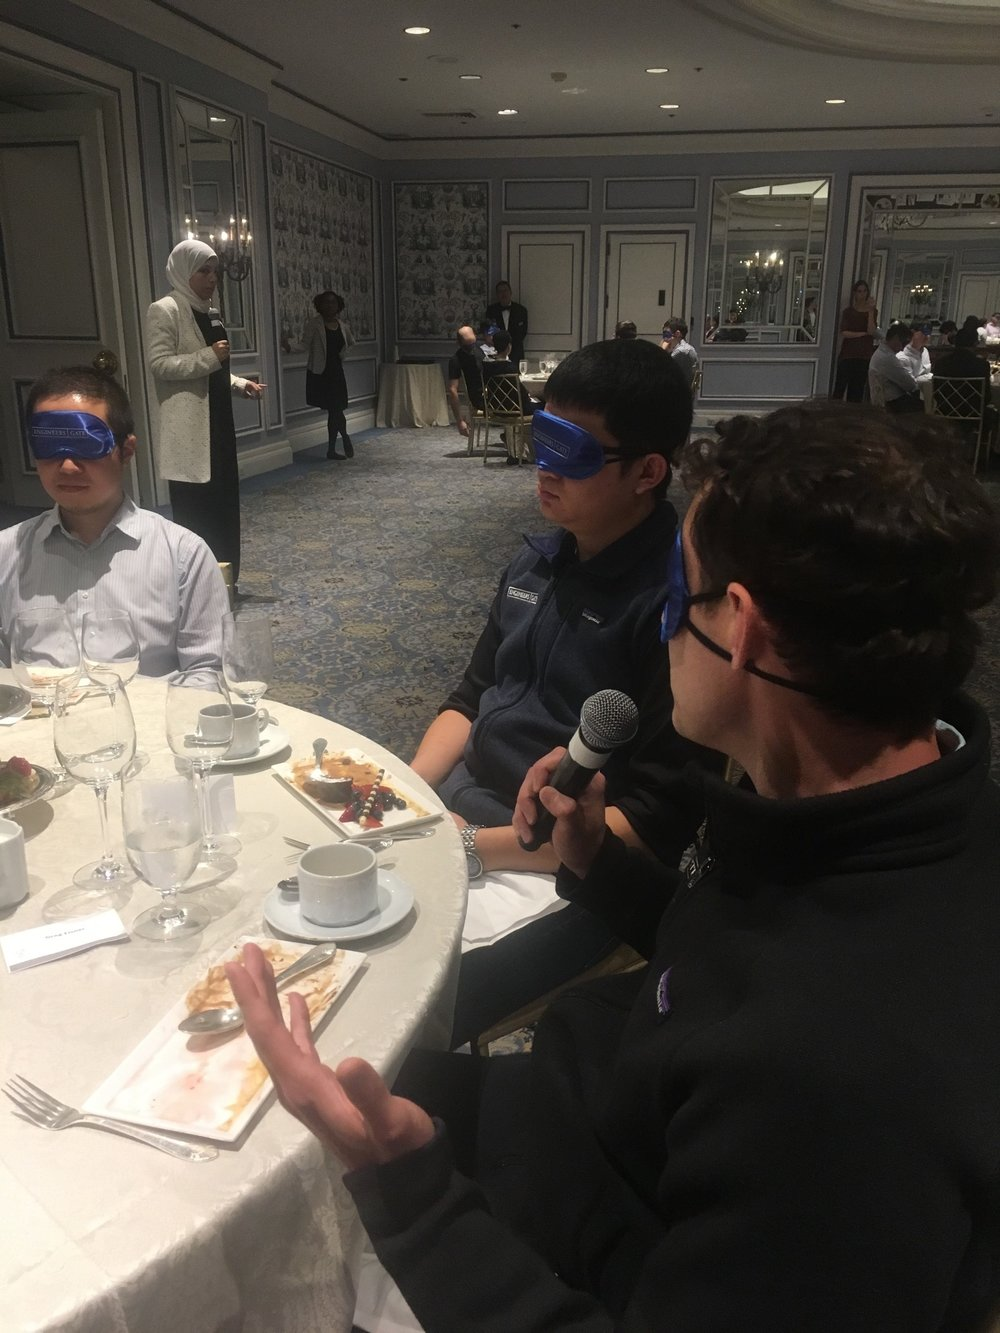 Blindfolded man speaking at a table while other blindfolded participants are listening intently